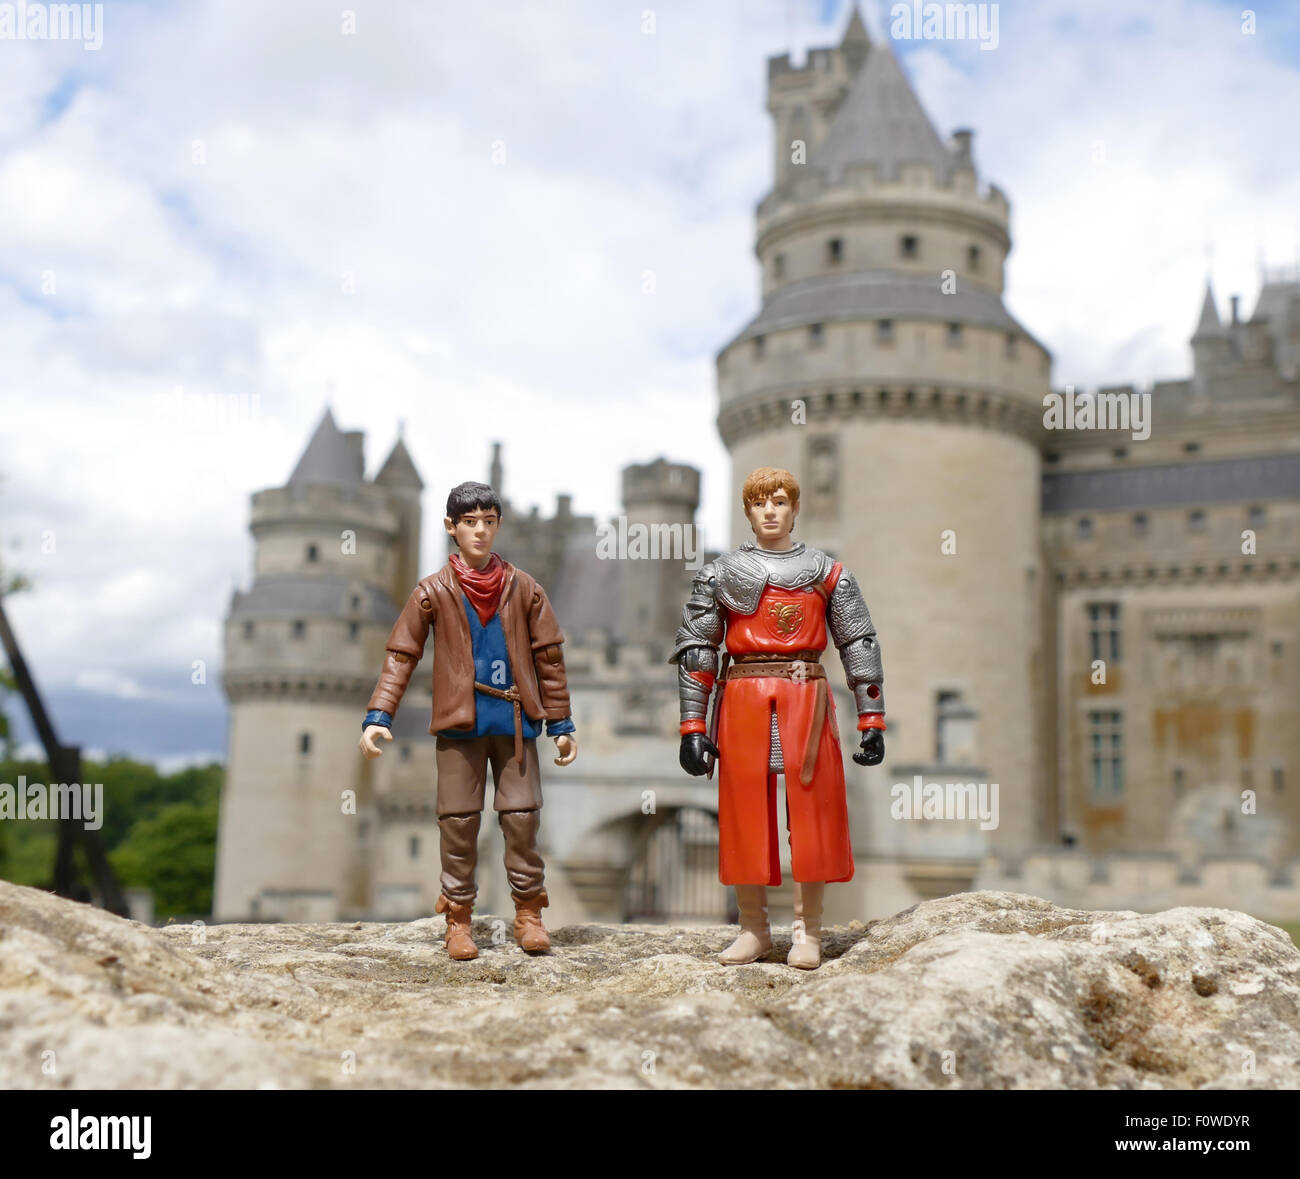 toy action figures from the bbc tv series merlin at he ch teau de 1970s Merlin Toy toy action figures from the bbc tv series merlin at he ch teau de pierrefonds pierrefonds castle in france